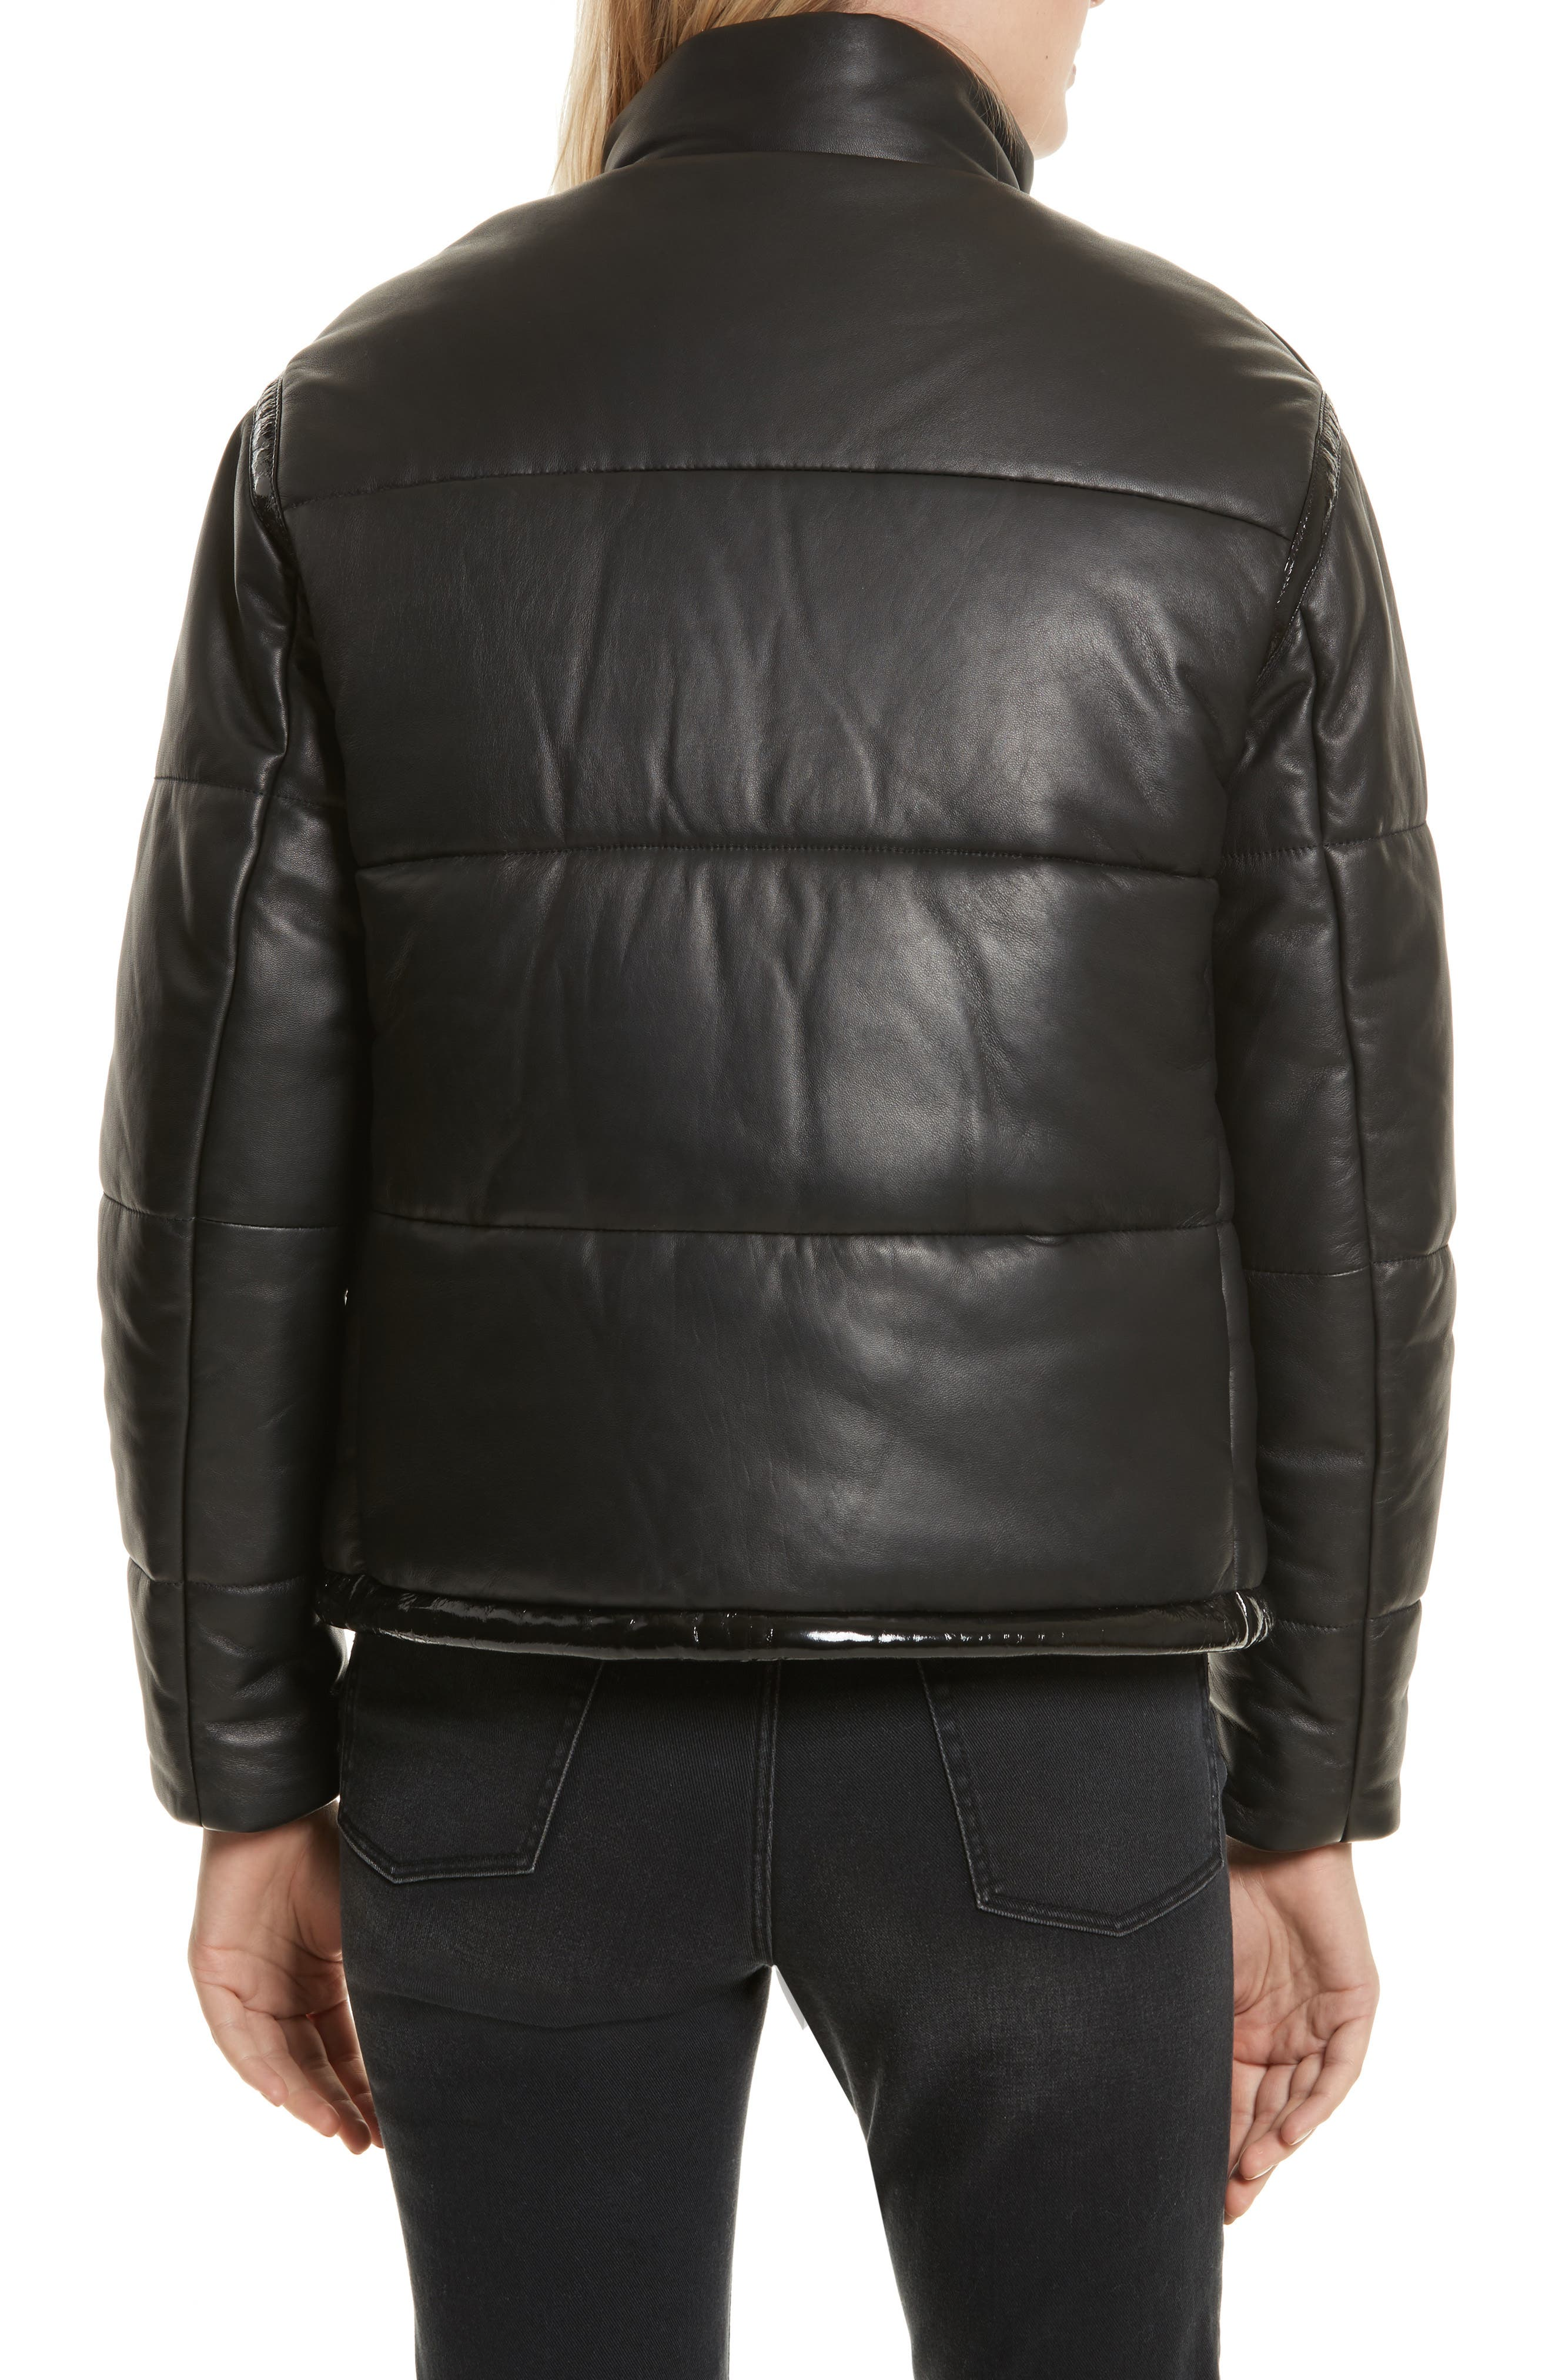 Power Puff Leather Jacket,                             Alternate thumbnail 2, color,                             001